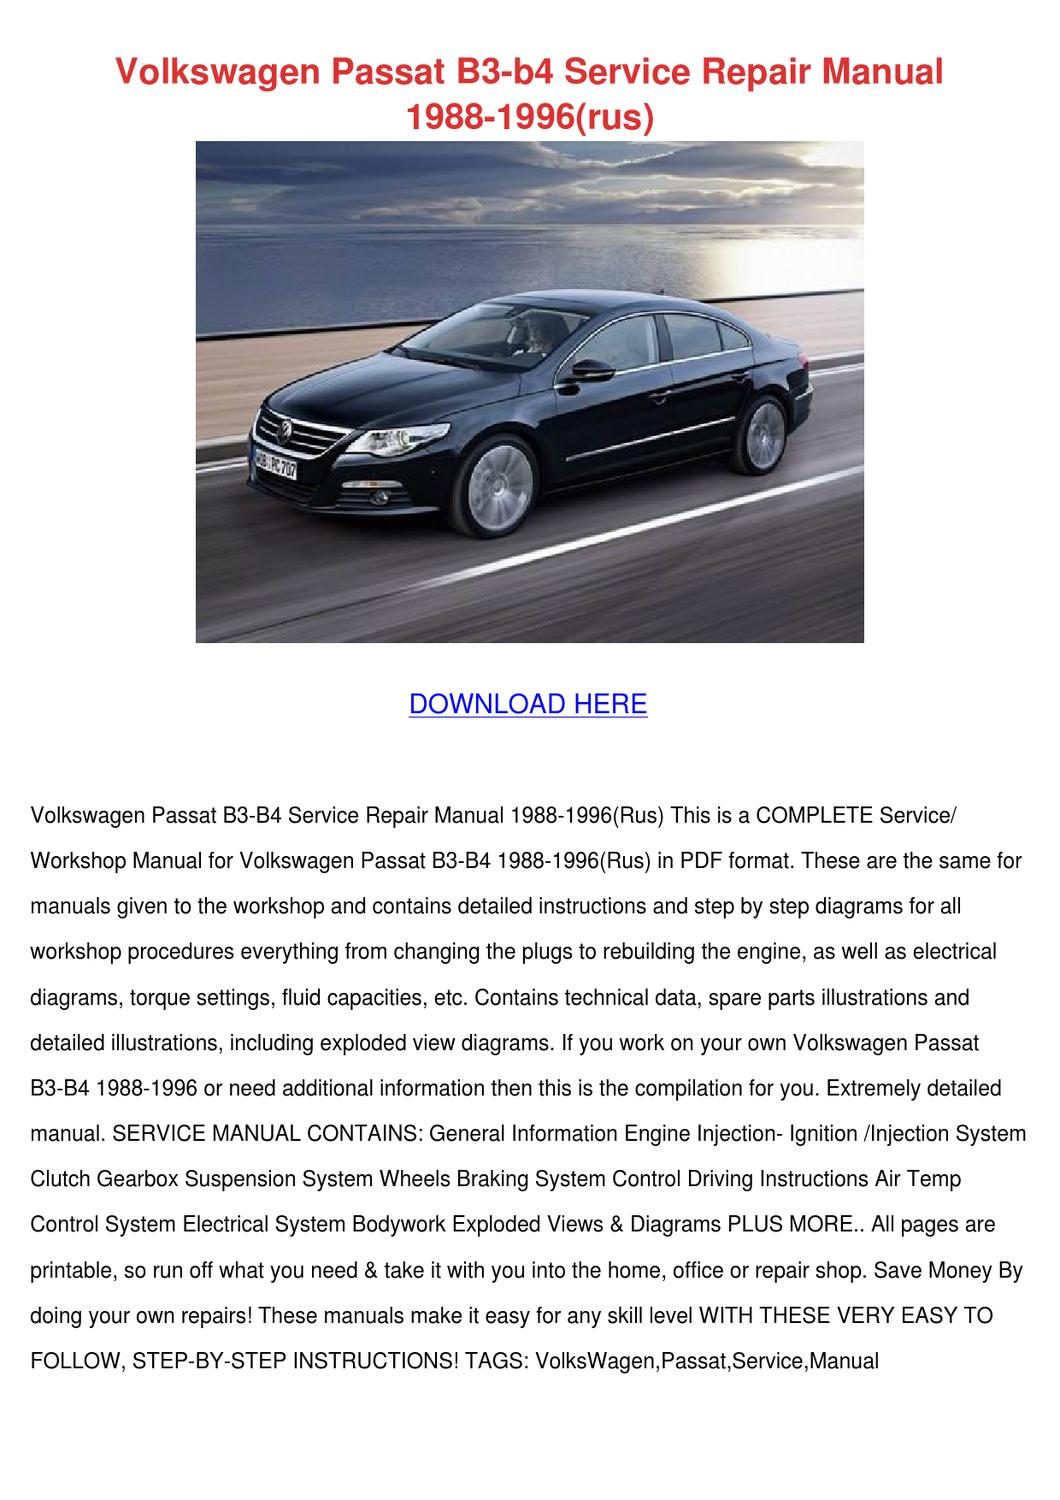 volkswagen passat b3 b4 service repair manual by mirtamcclintock issuu